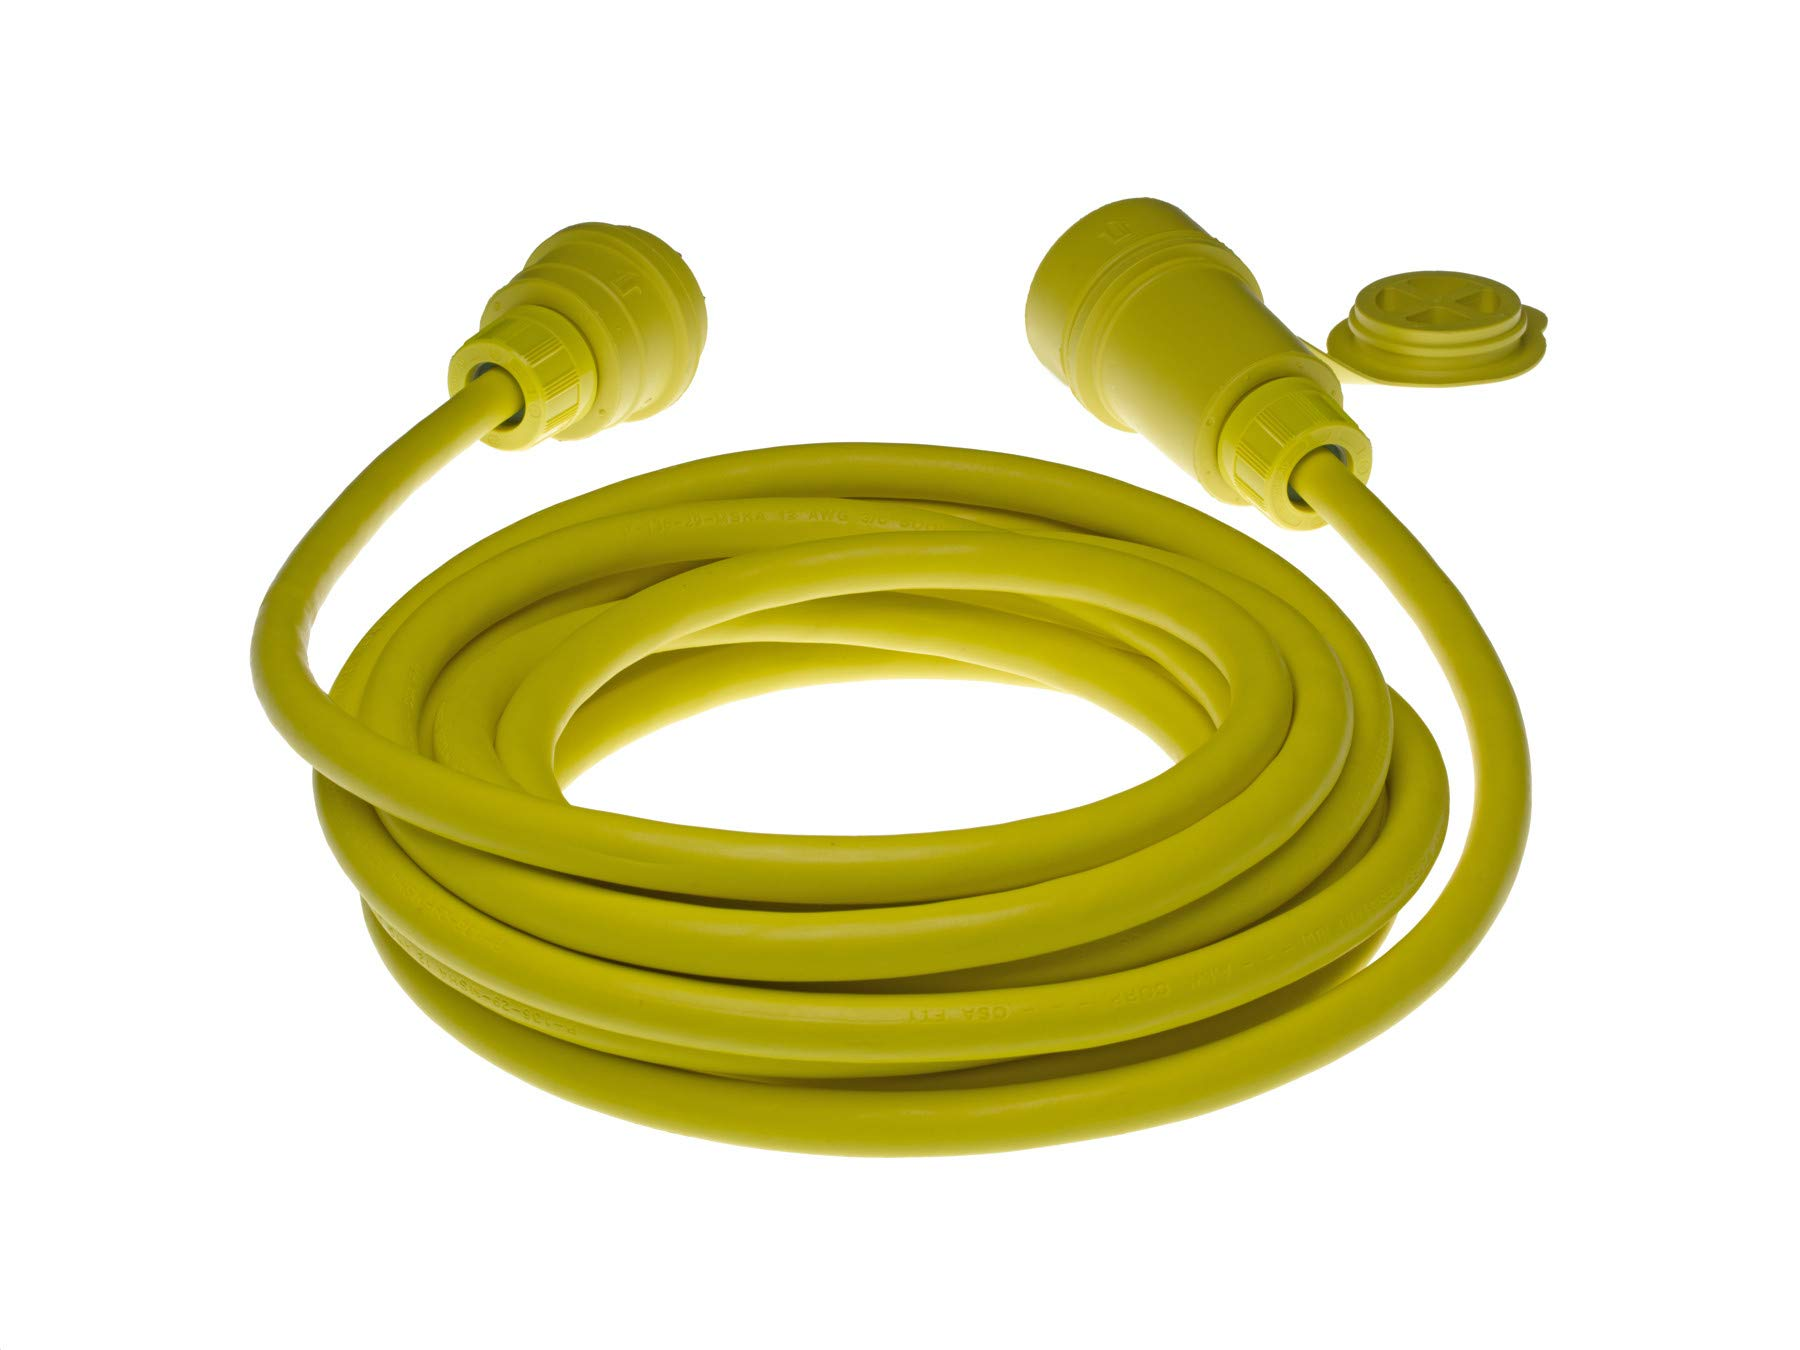 Woodhead 28W47A103 Watertite Wet Location Locking Blade Cordset, 3 Wires, 2 Poles, NEMA L5-30 Configuration, 10-Gauge SOOW Cord, Yellow, 30A Current, 125V Voltage, 25ft Cord Length